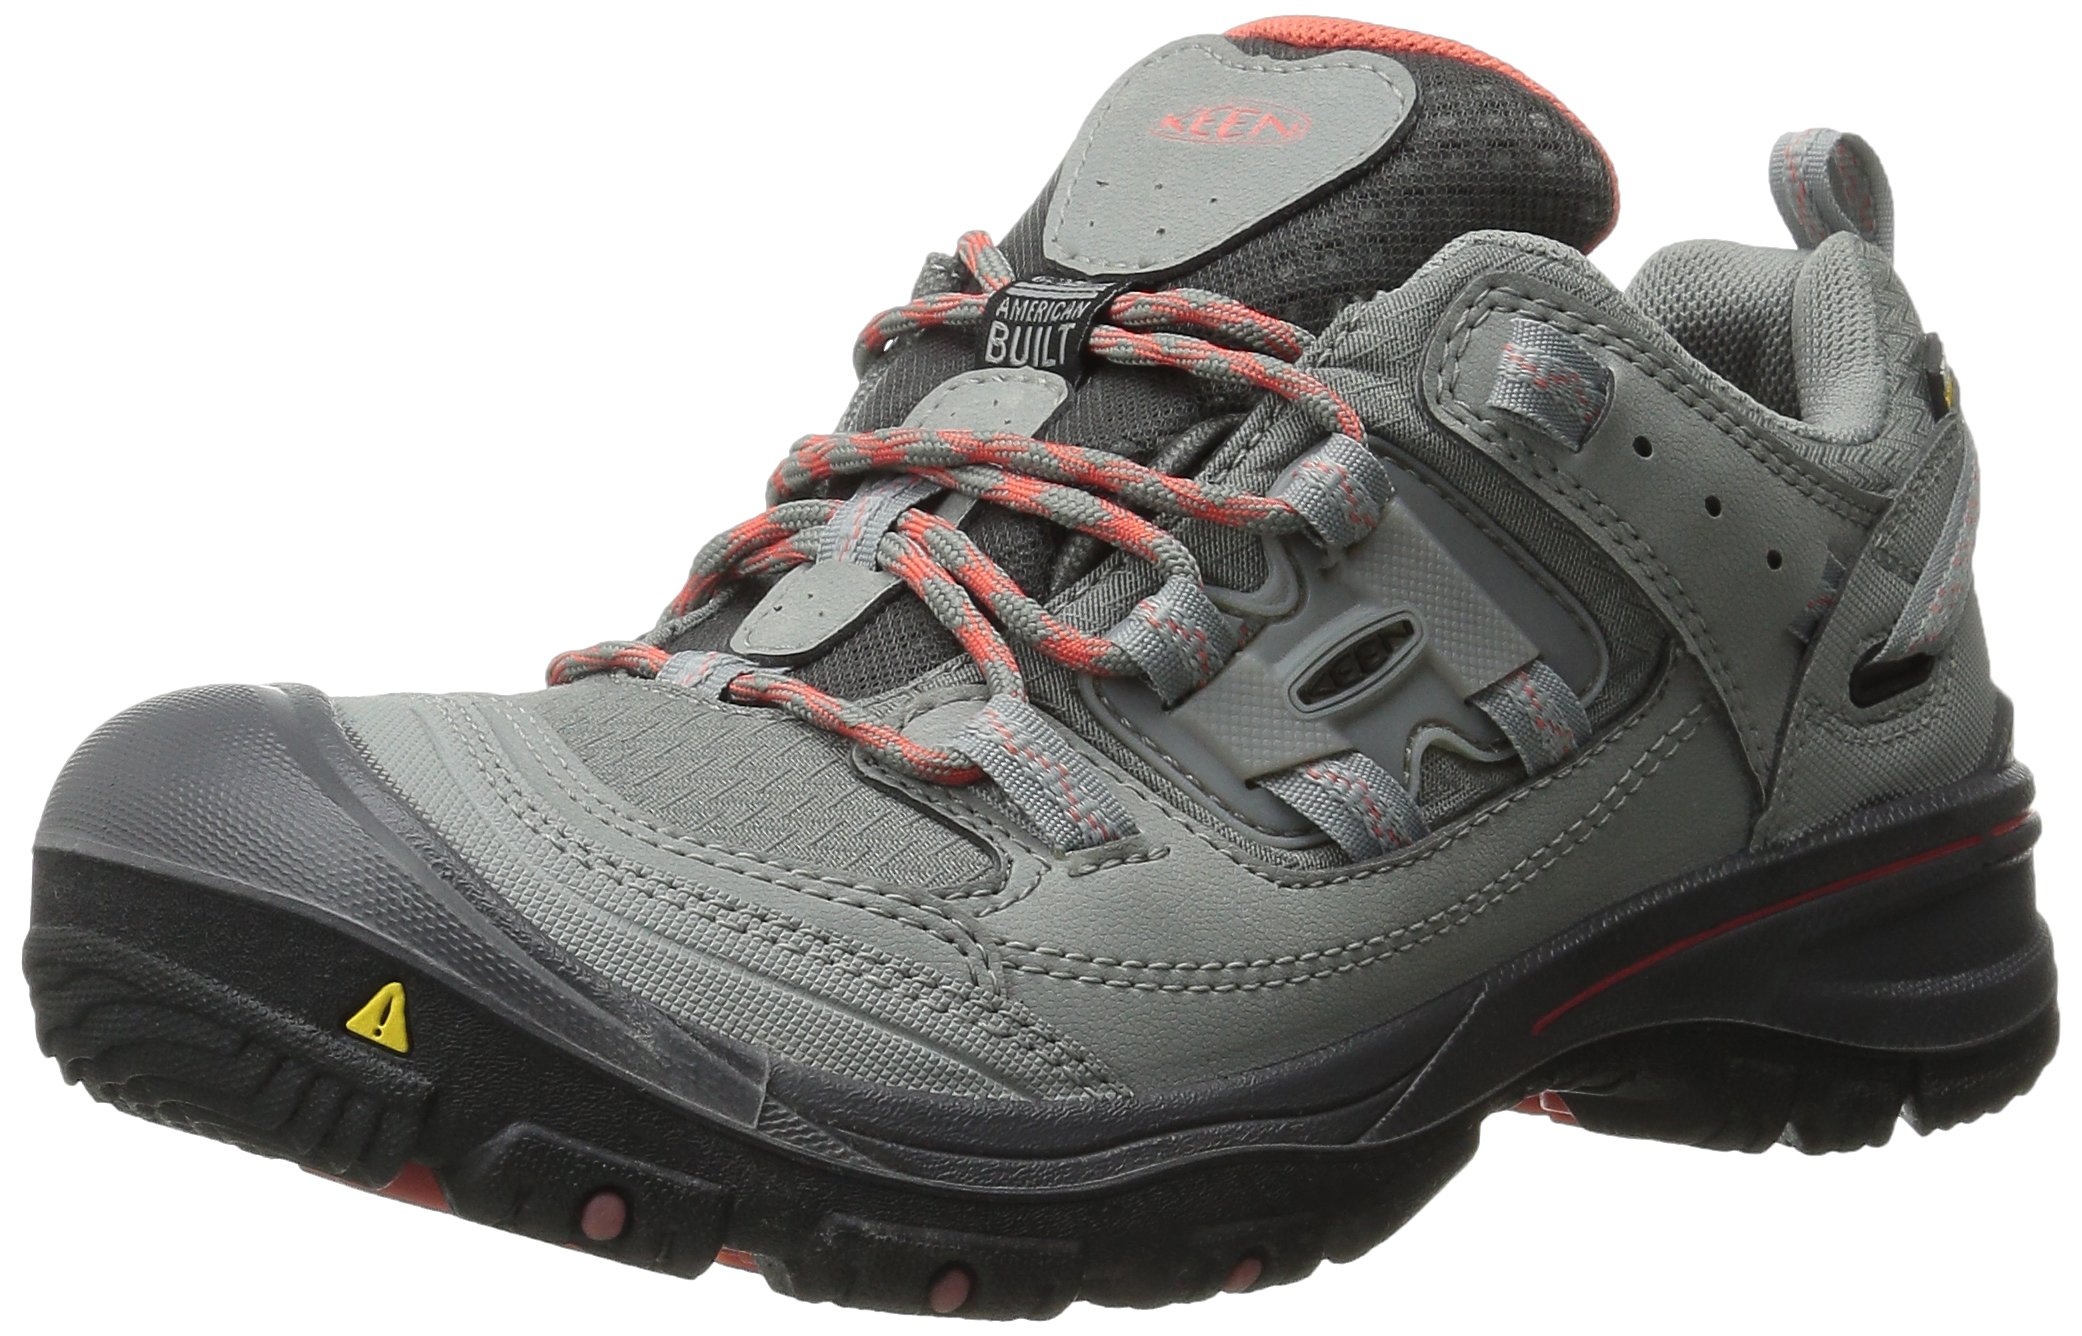 KEEN Women's Logan Outdoor Shoe, Neutral Gray/Hot Coral, 8.5 M US